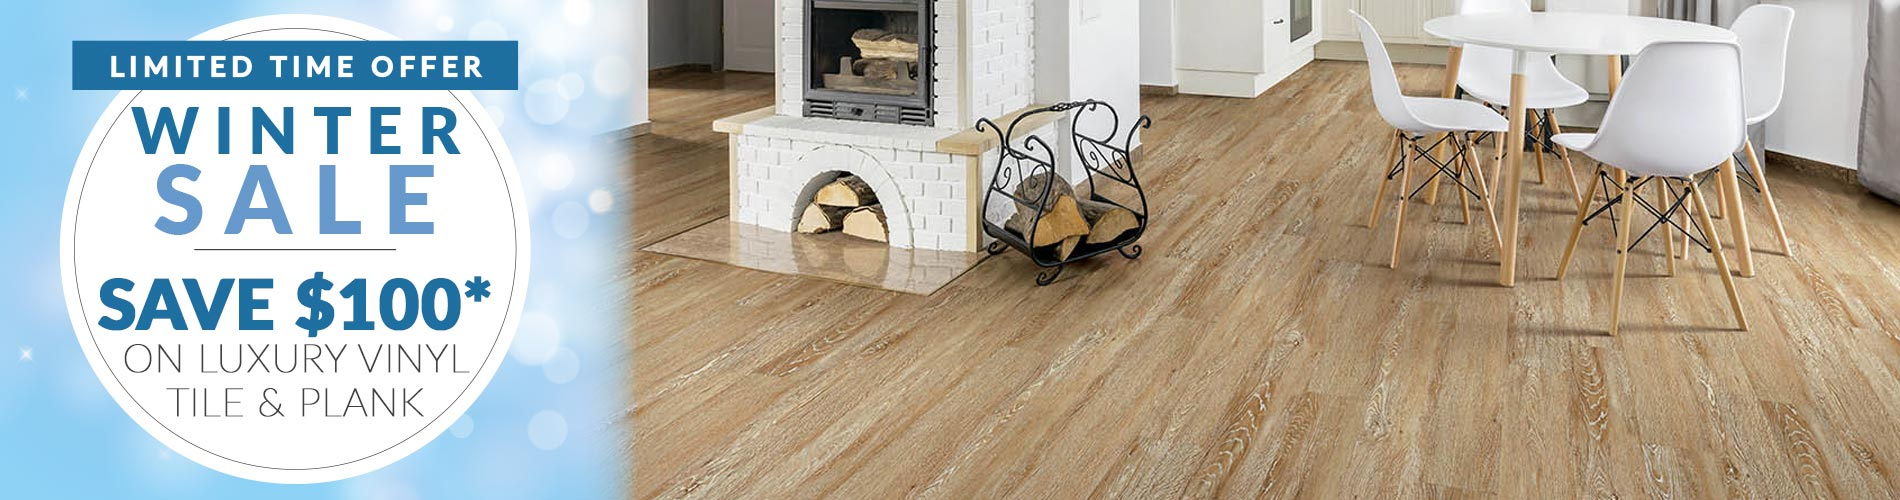 Save $100* on Luxury Vinyl Tile & Plank! *Minimum product & installation purchase of $999. Must mention this ad. Cannot combine offersNot valid on clearance, in-stock items, and prior purchases. Offer ends 02/29/20.